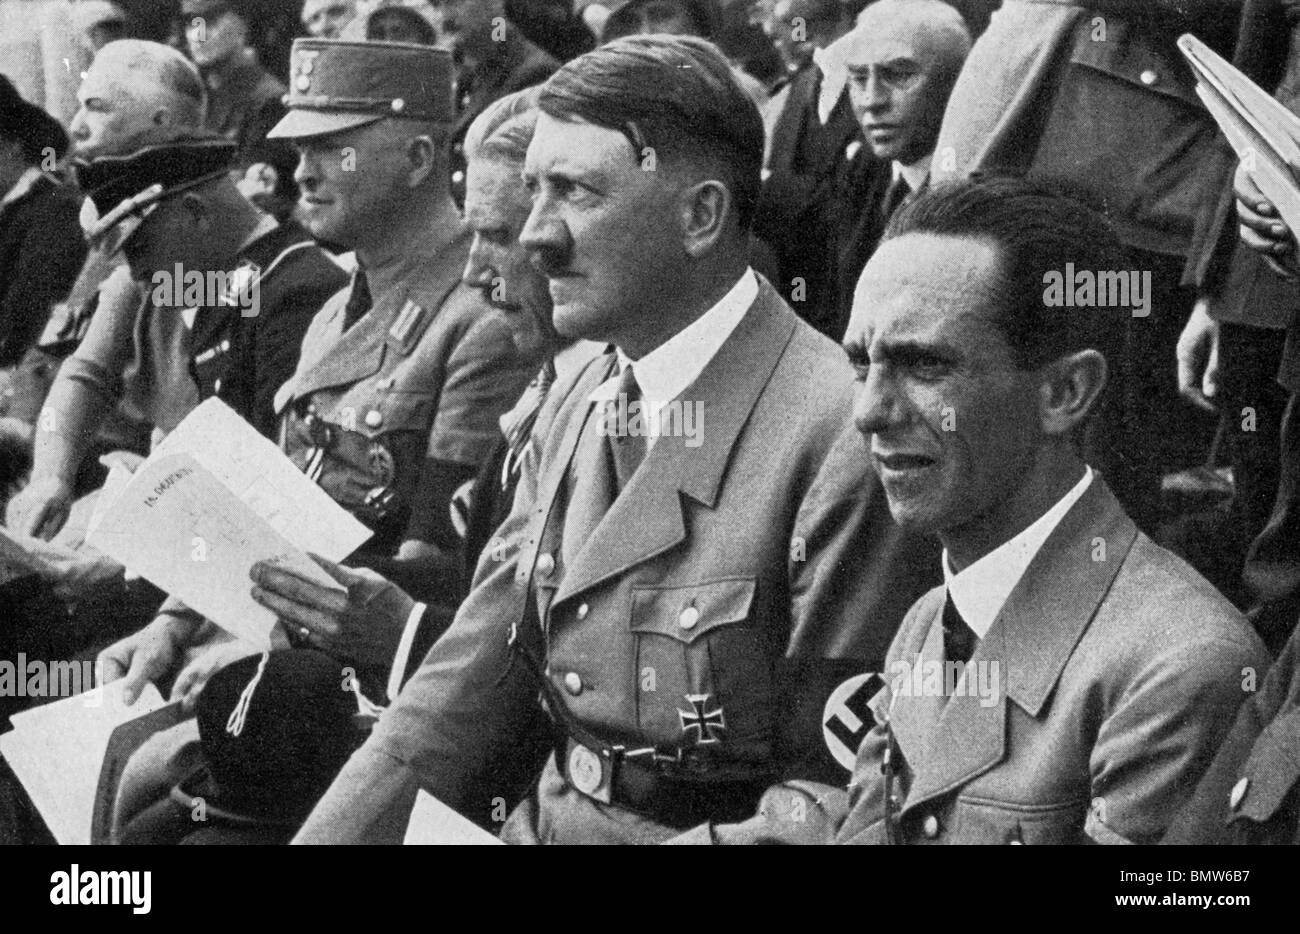 ADOLF HITLER with Joseph Goebbels at right about 1933 - Stock Image